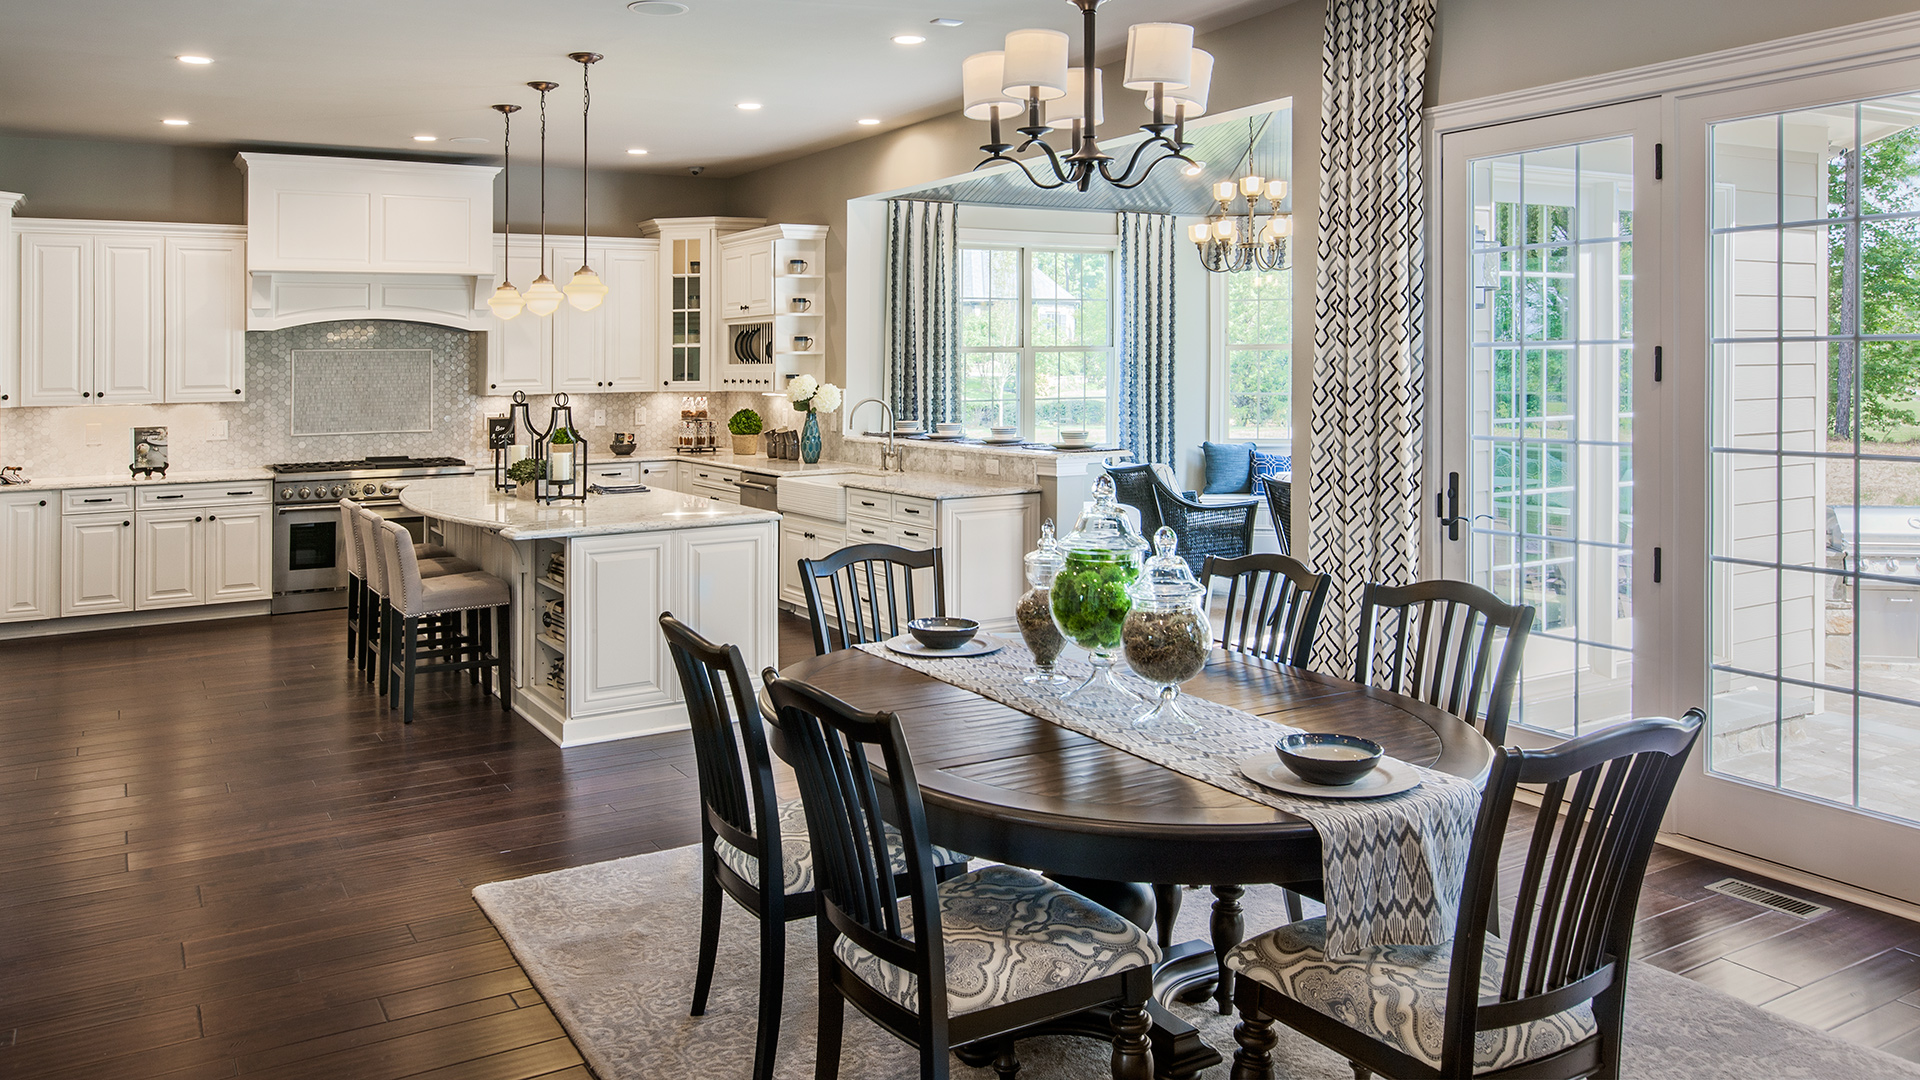 Gourmet kitchens offer large islands, walk-in pantries, hardwood floors, stainless steel appliances and more.